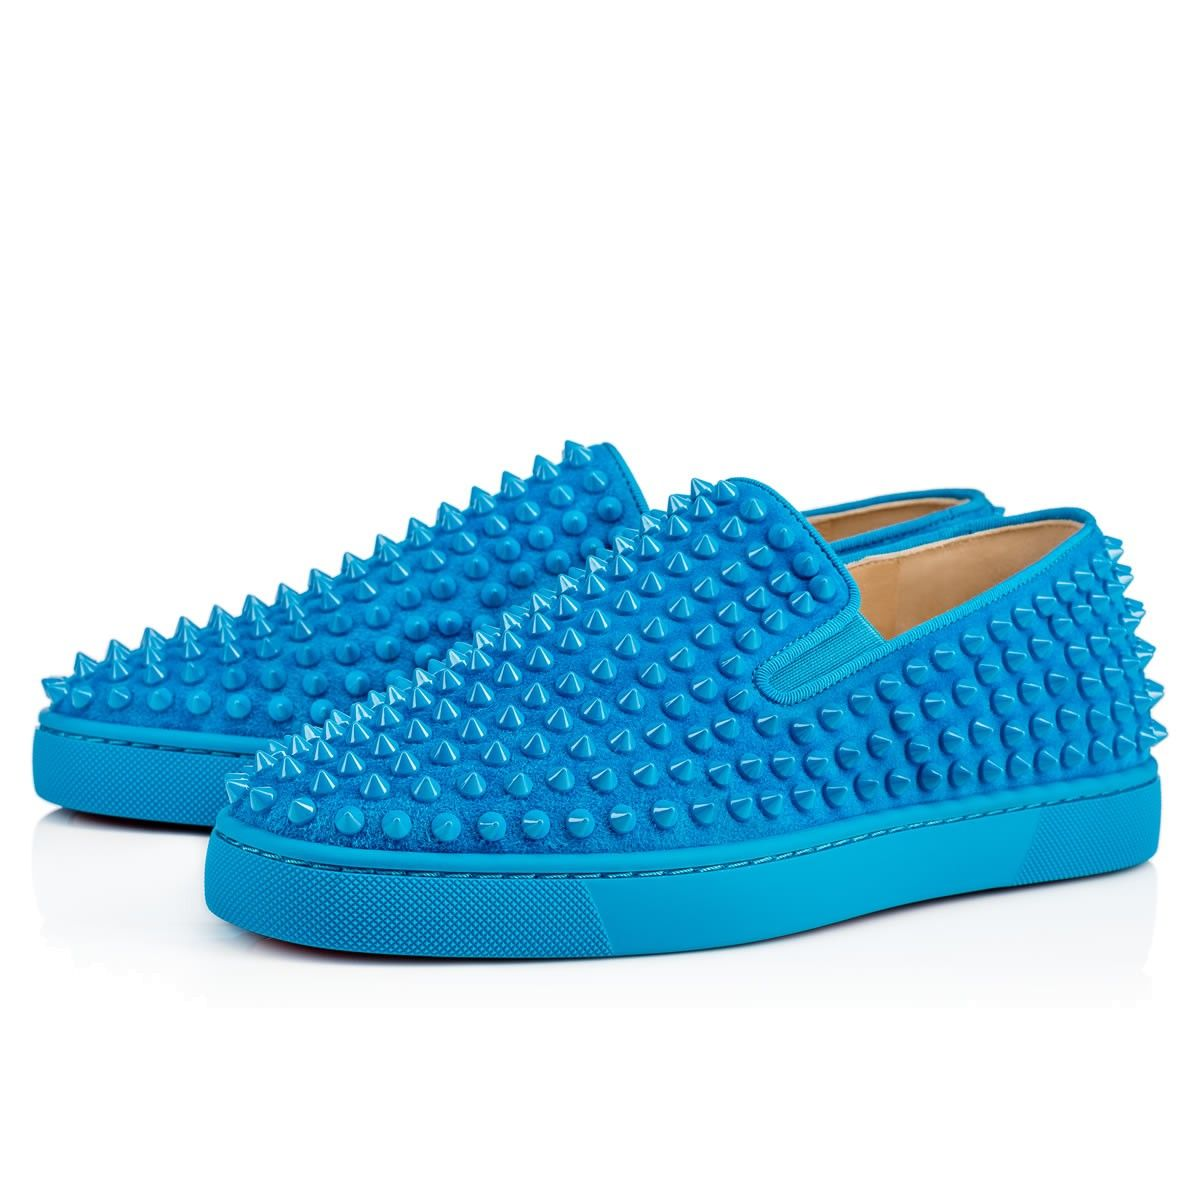 ae5a655feaf4 CHRISTIAN LOUBOUTIN Roller-Boat Men S Flat Egyptian Blue Suede - Men Shoes  - Christian Louboutin.  christianlouboutin  shoes